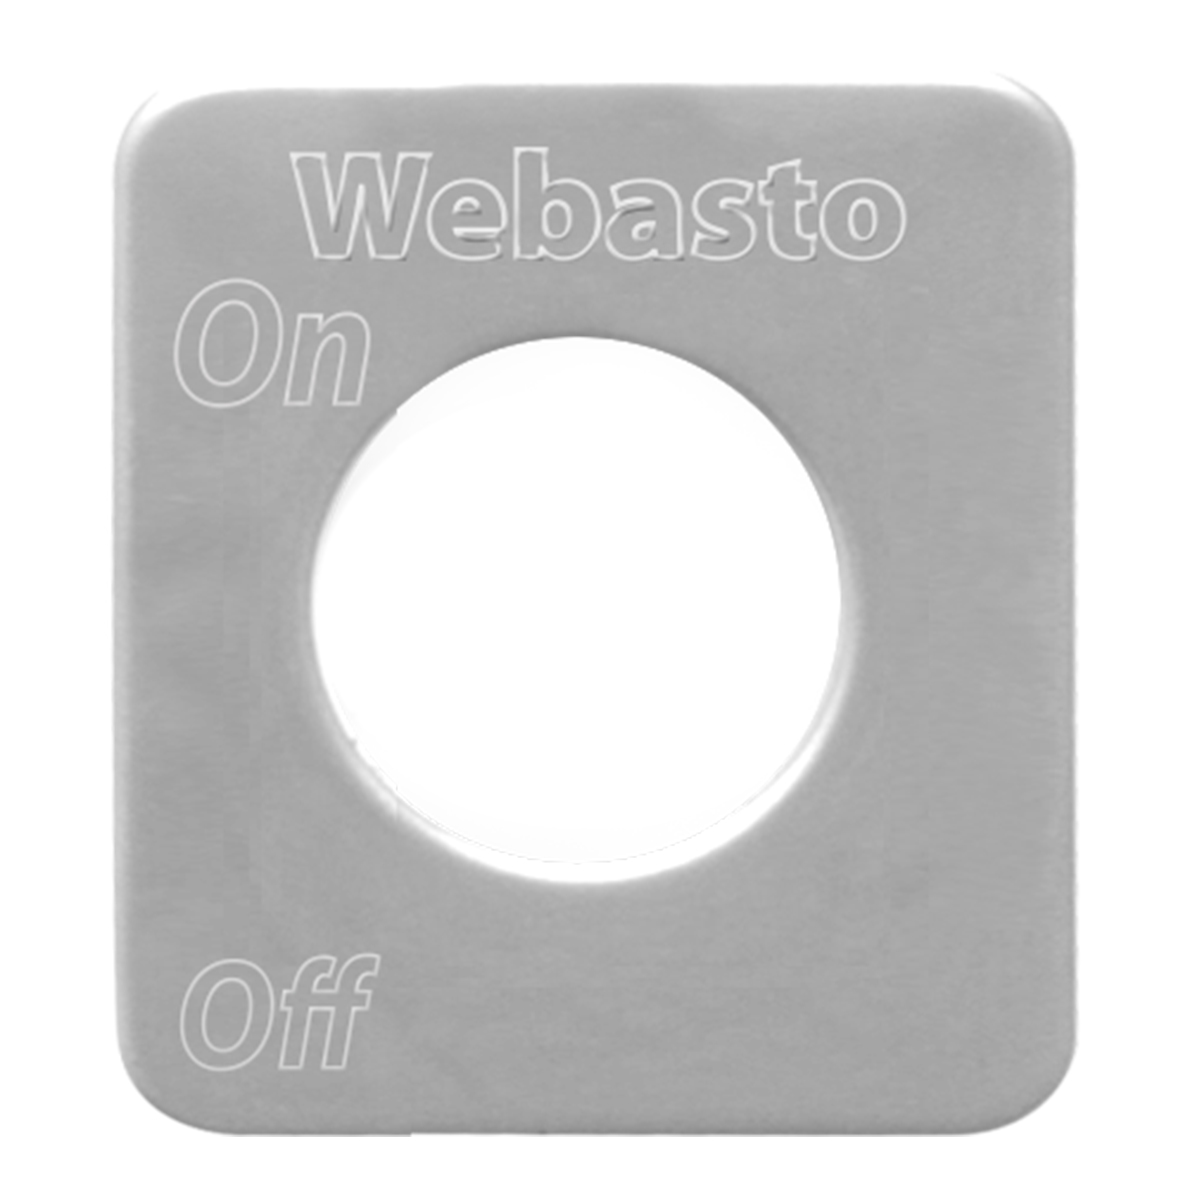 68525 Stainless Steel Webasto Engine Heater Switch Plate for KW